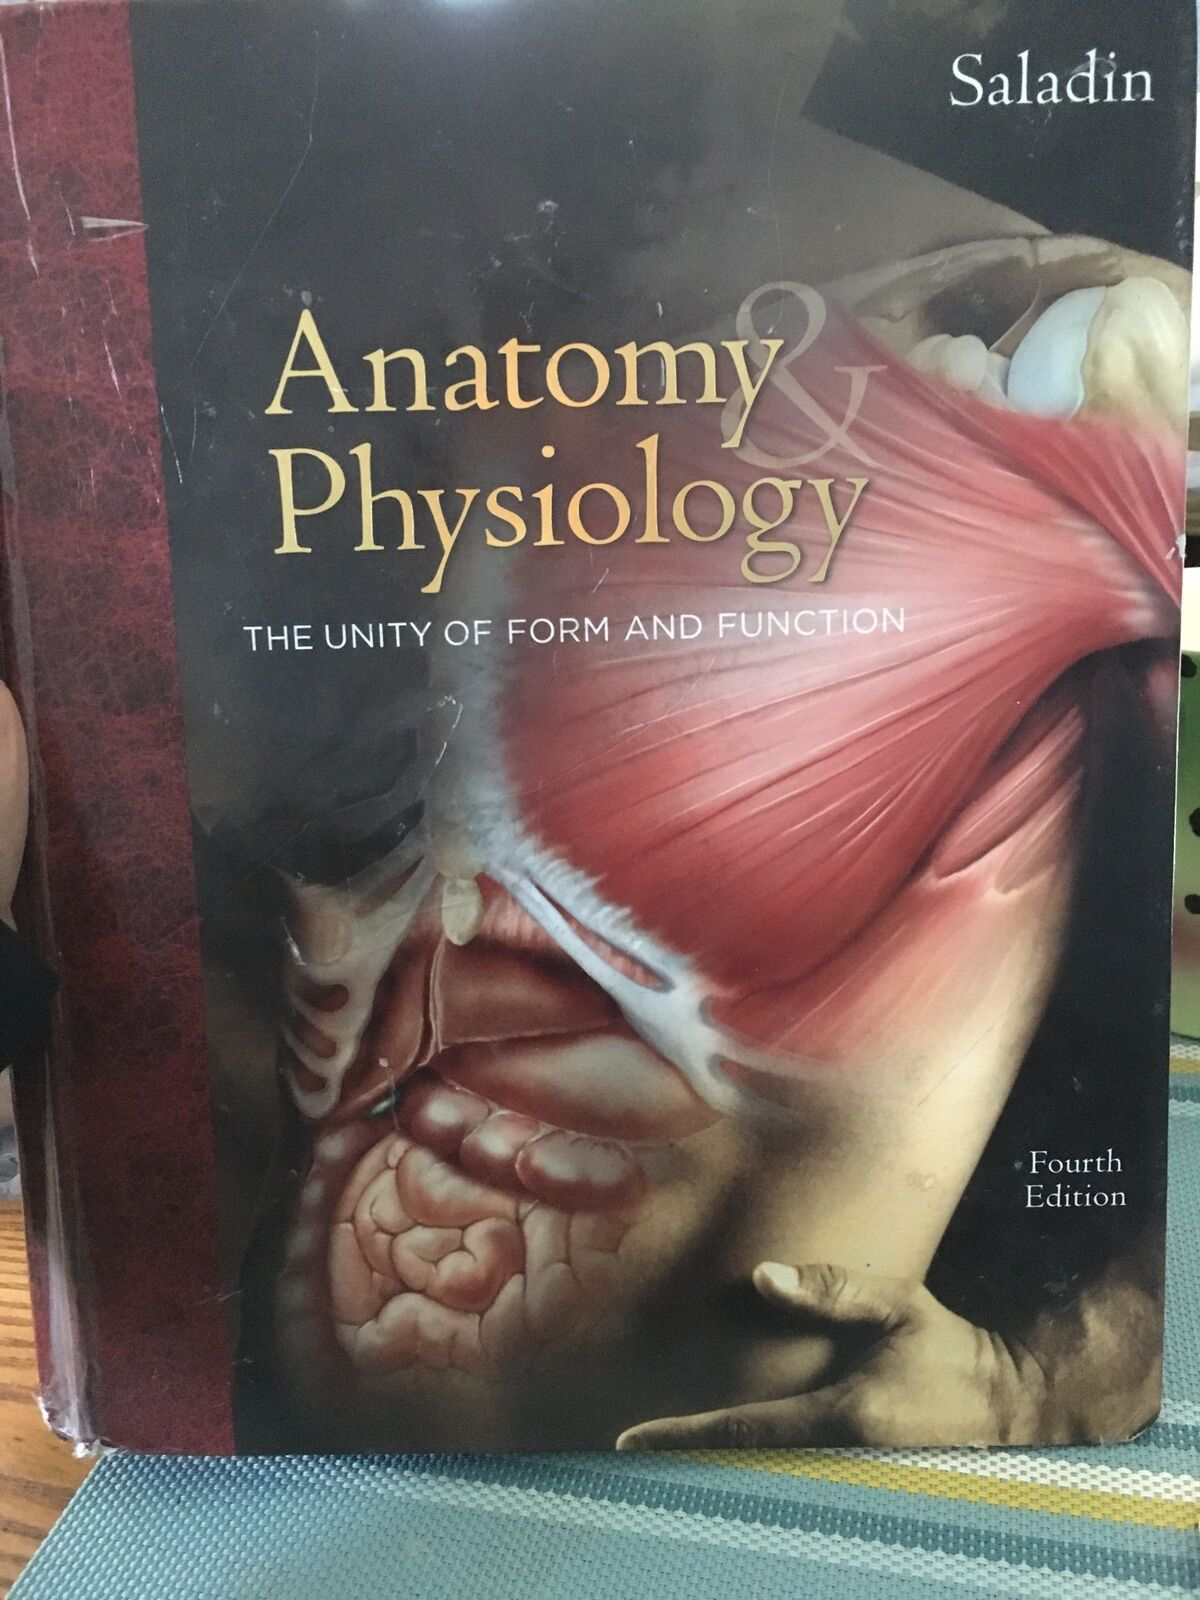 Hermosa Anatomy And Physiology Unity Of Form And Function Imagen ...